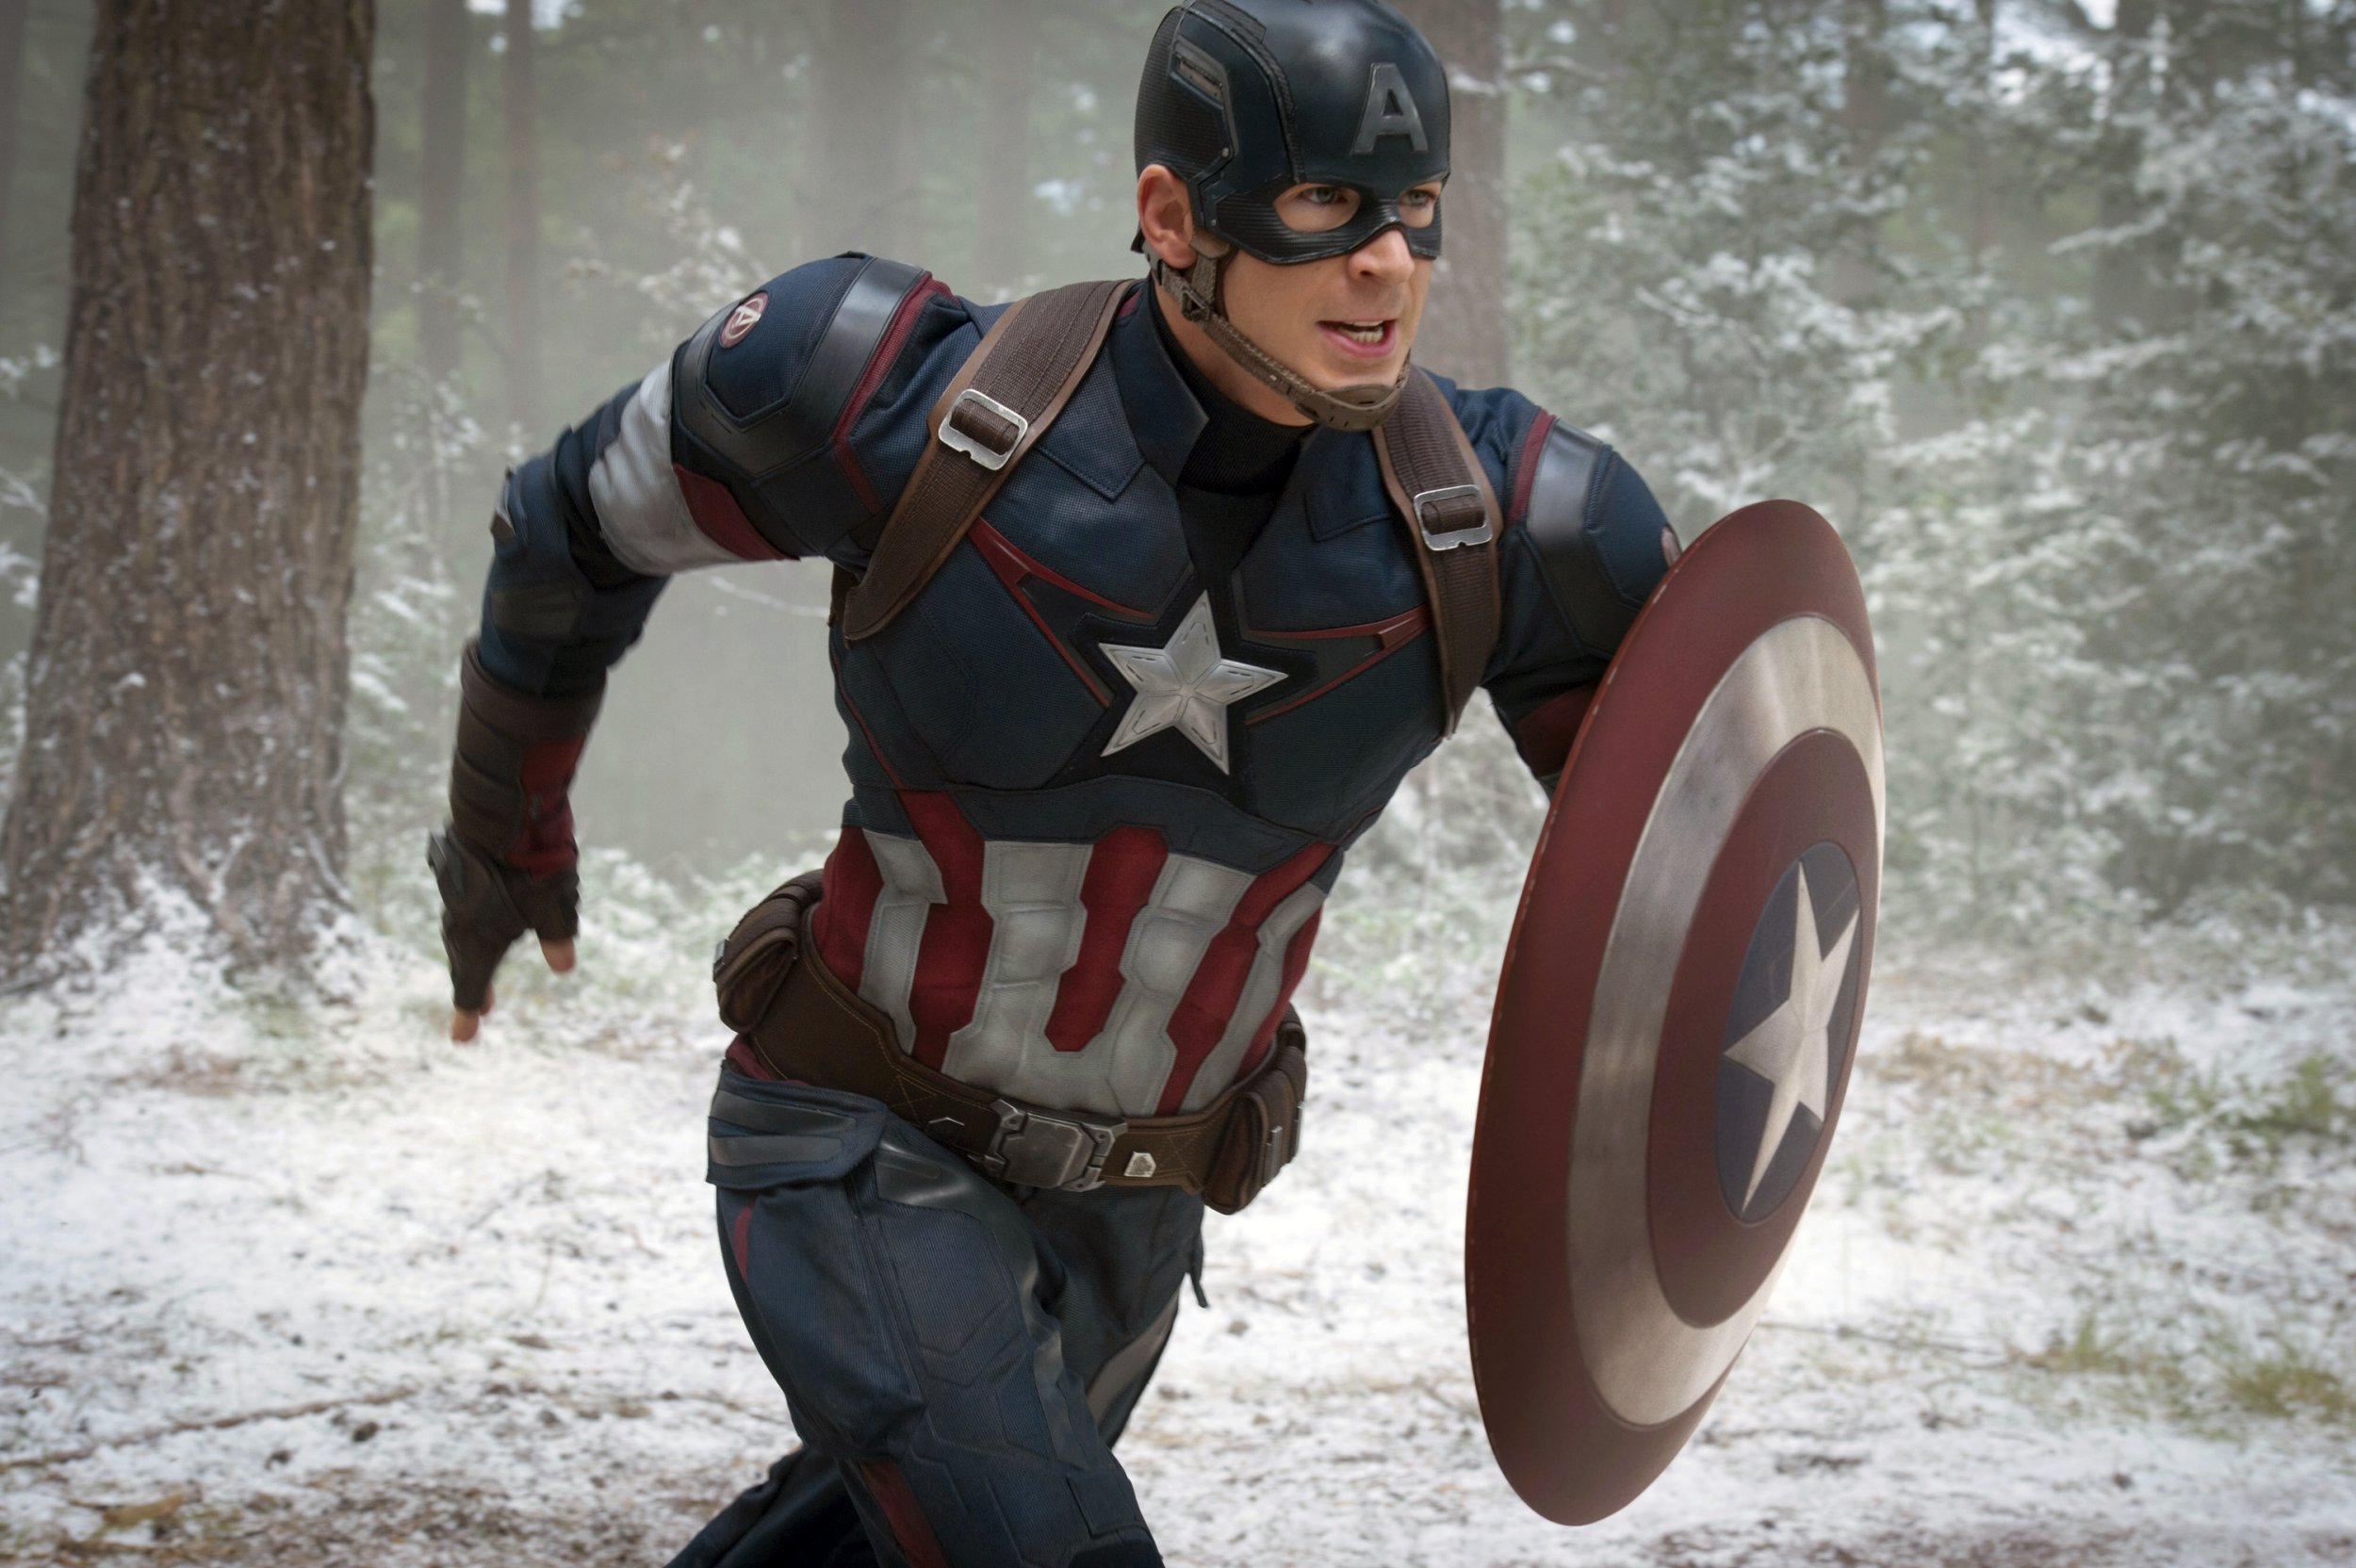 Avengers fan is ready to kill off Captain America in new Endgame theory